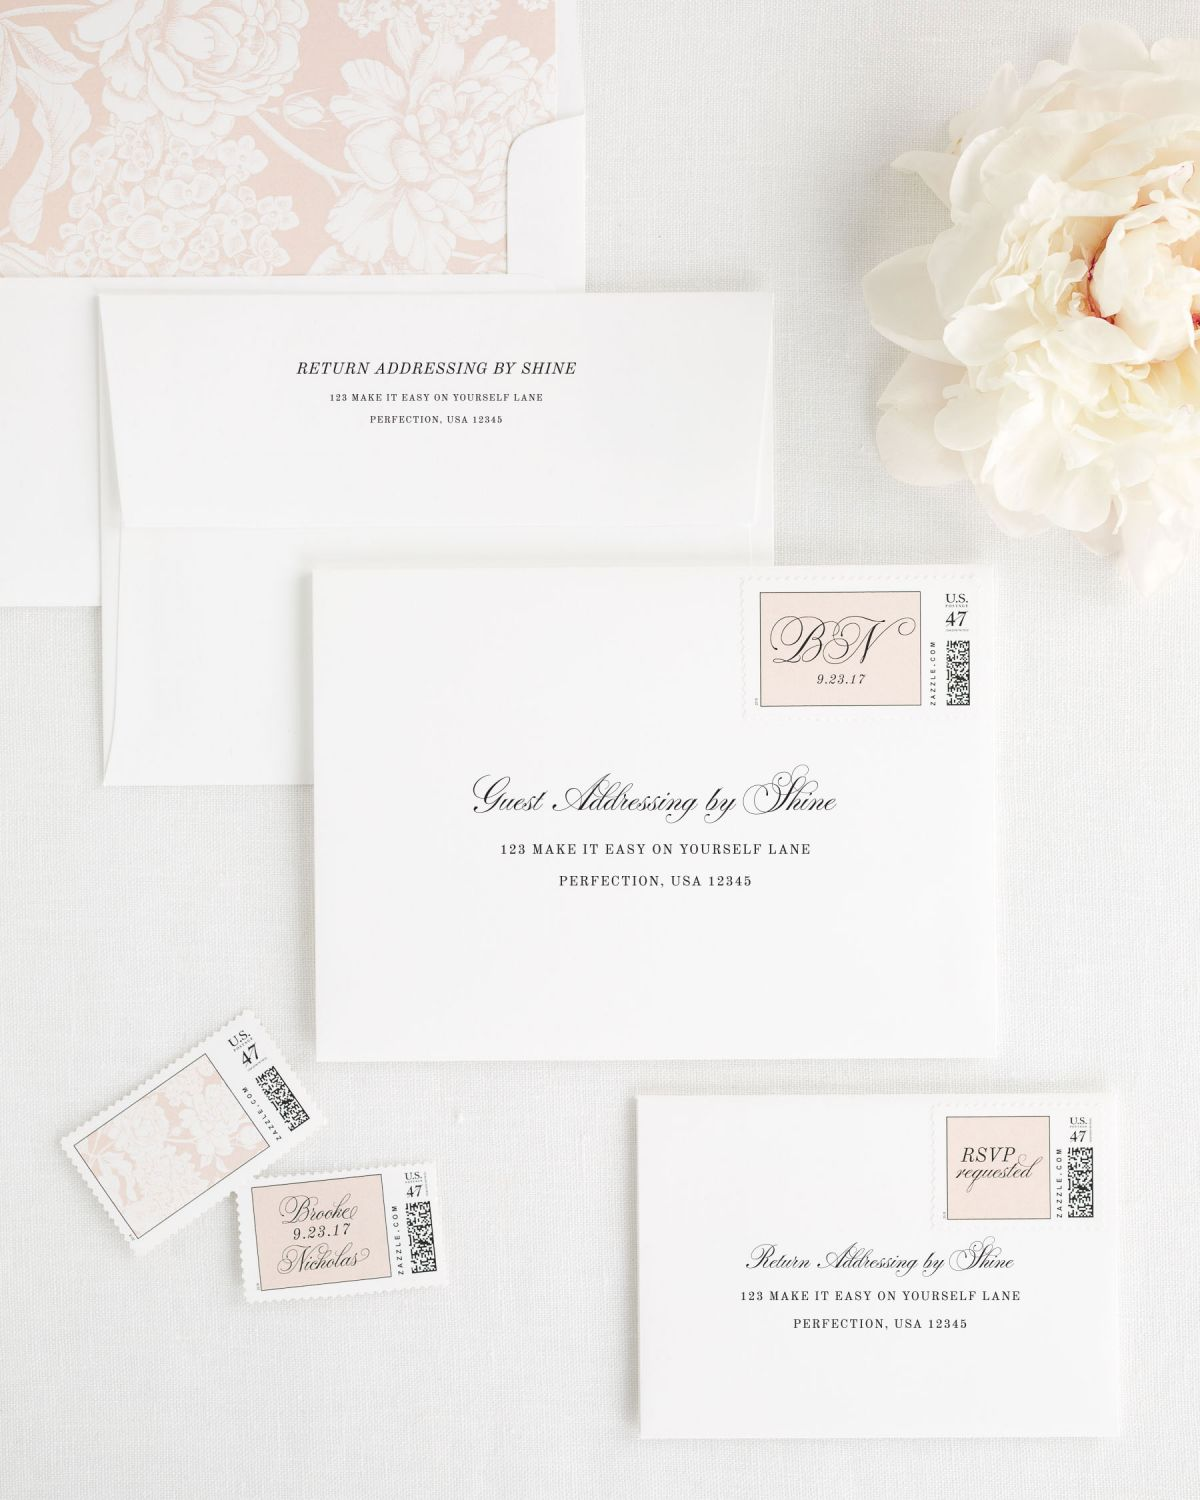 wedding envelopes with guest addressing and custom stamps in rose gold